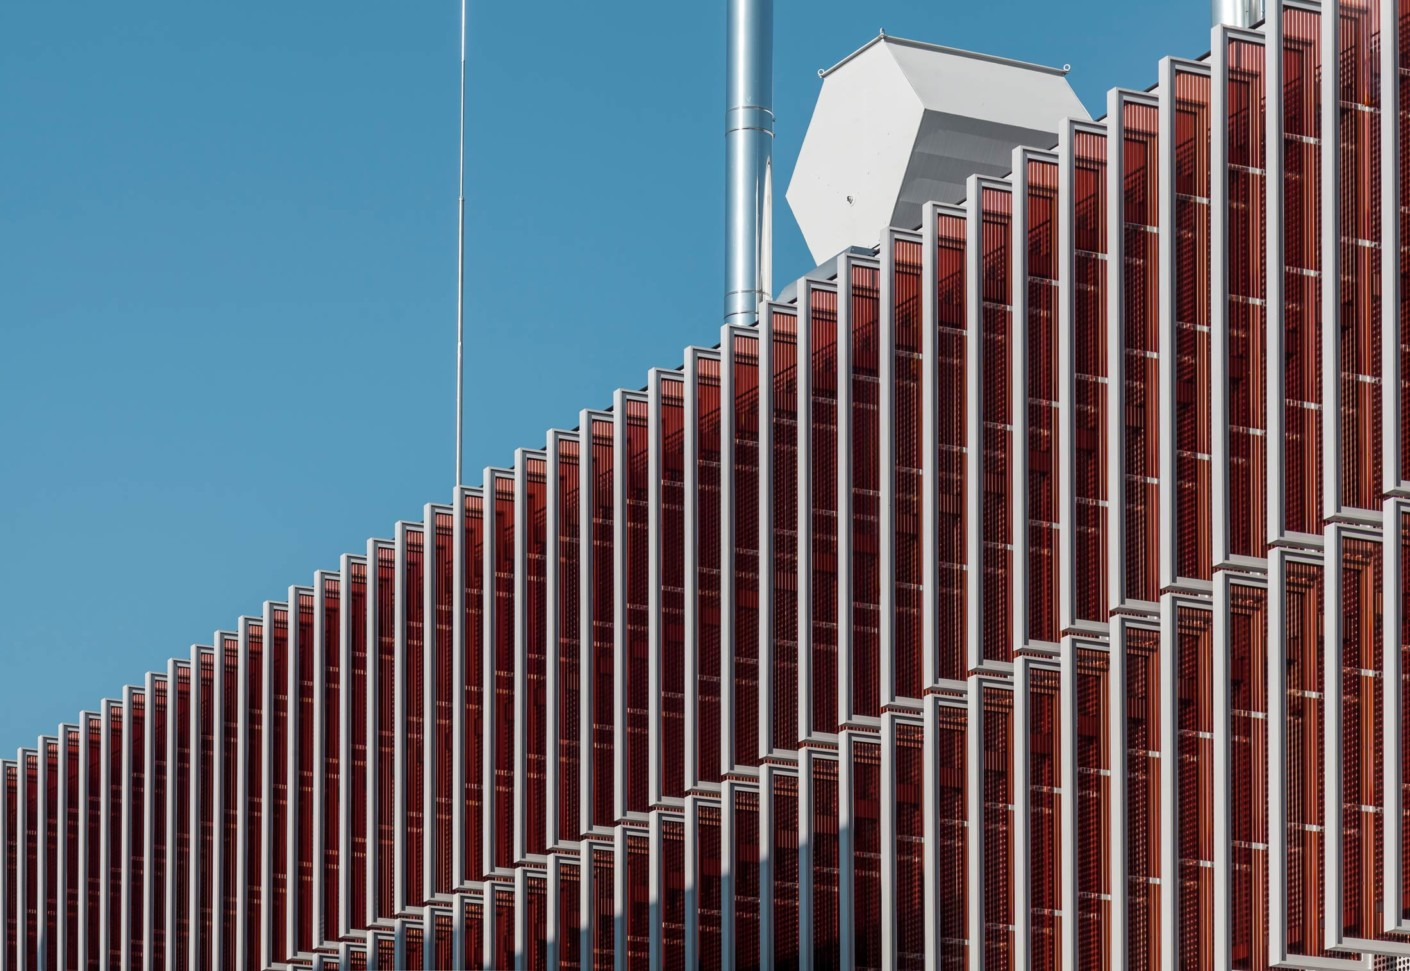 Shadovoltaic Merck Group Darmstadt By Colt Stylepark